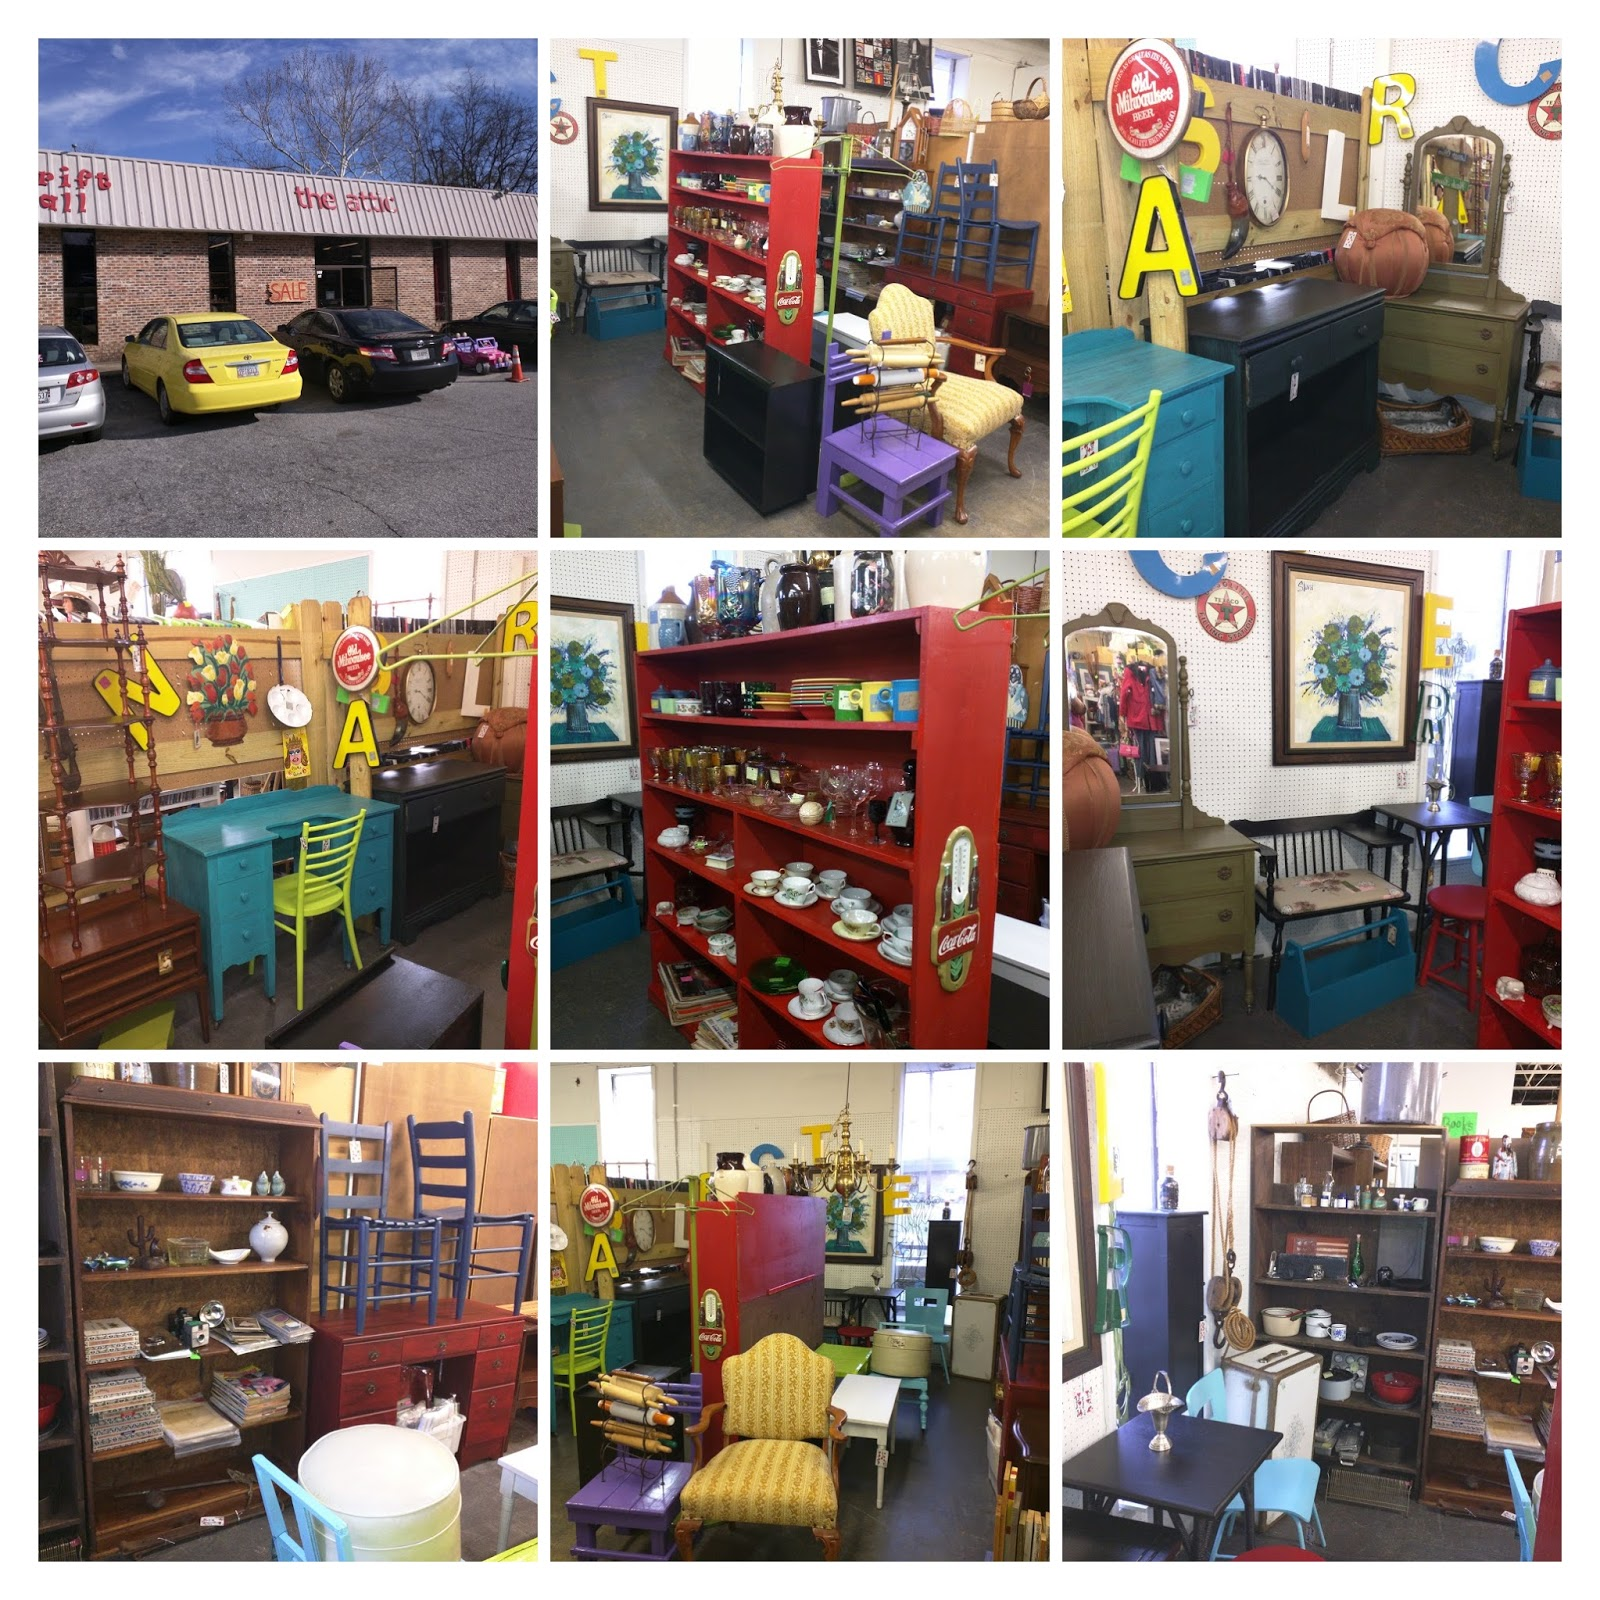 Labels: Antique Mall, Columbus Ga, Consignment, Estate, Ginas Junk, Resale,  The Attic, Thrift Mall, Used Furniture